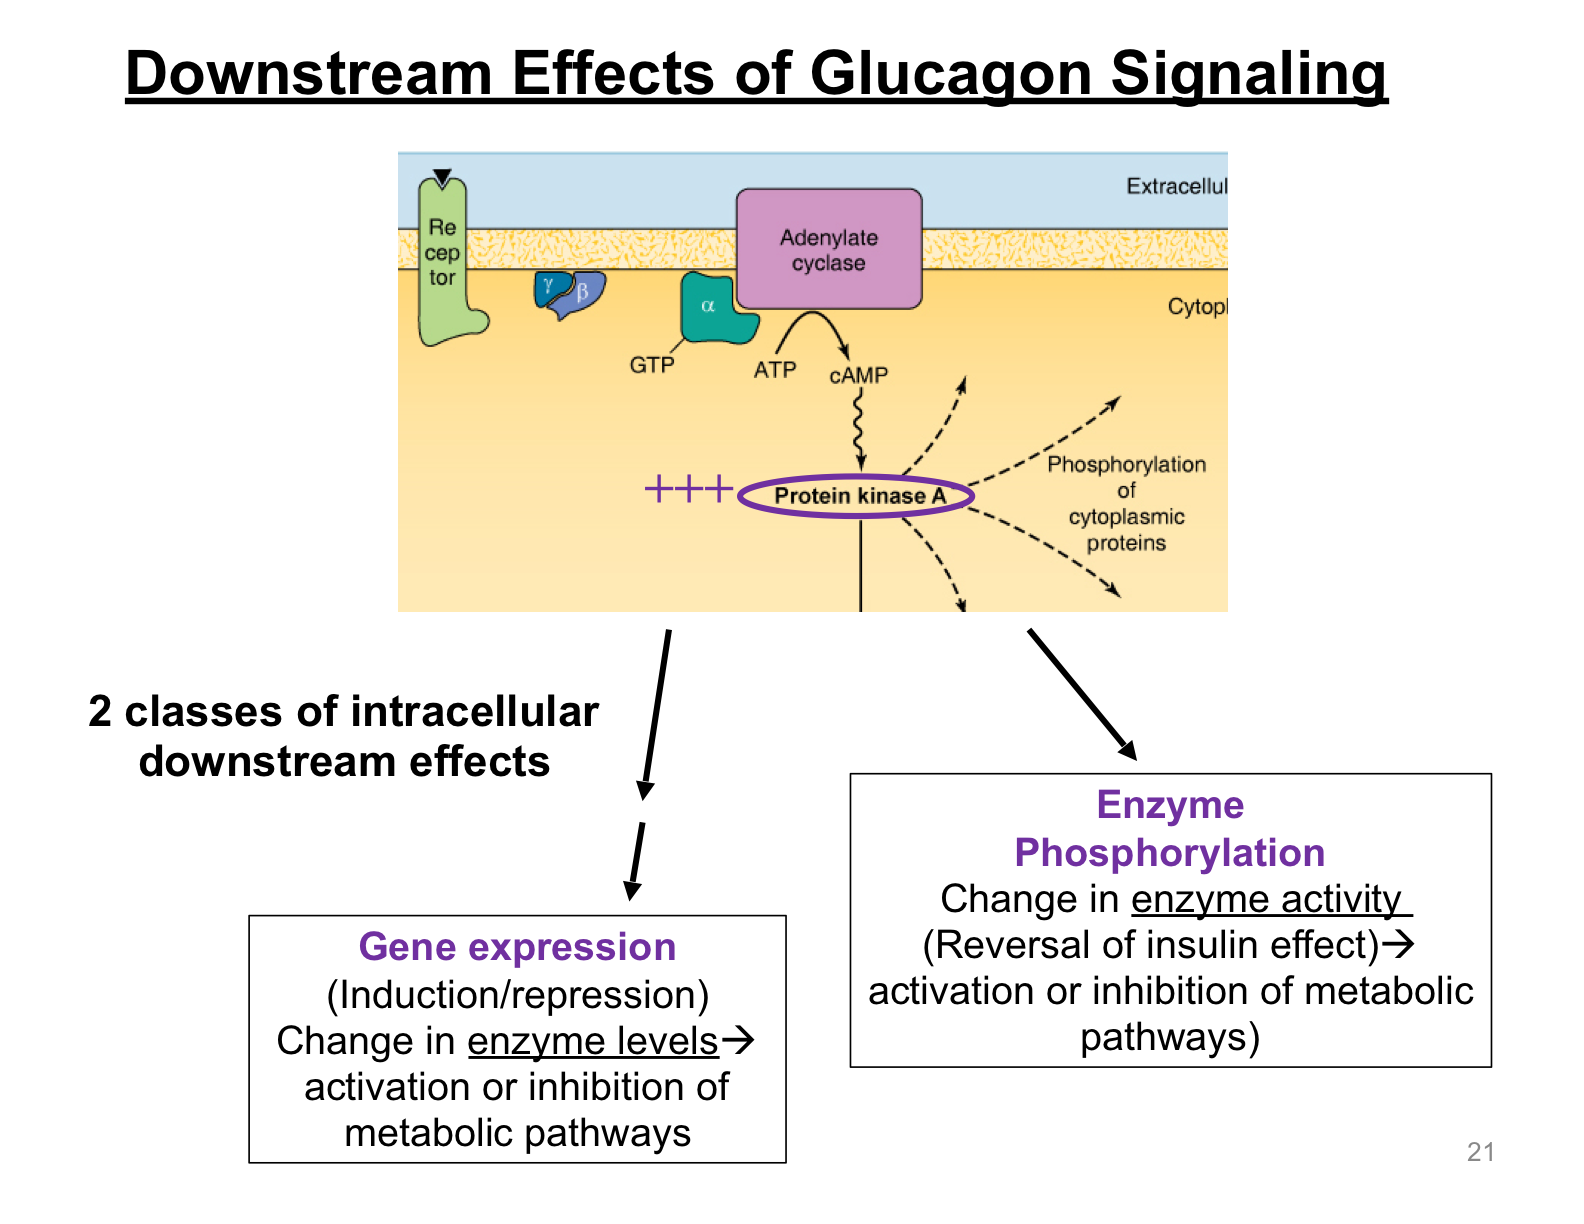 describe the downstream effects of glucagon signaling?